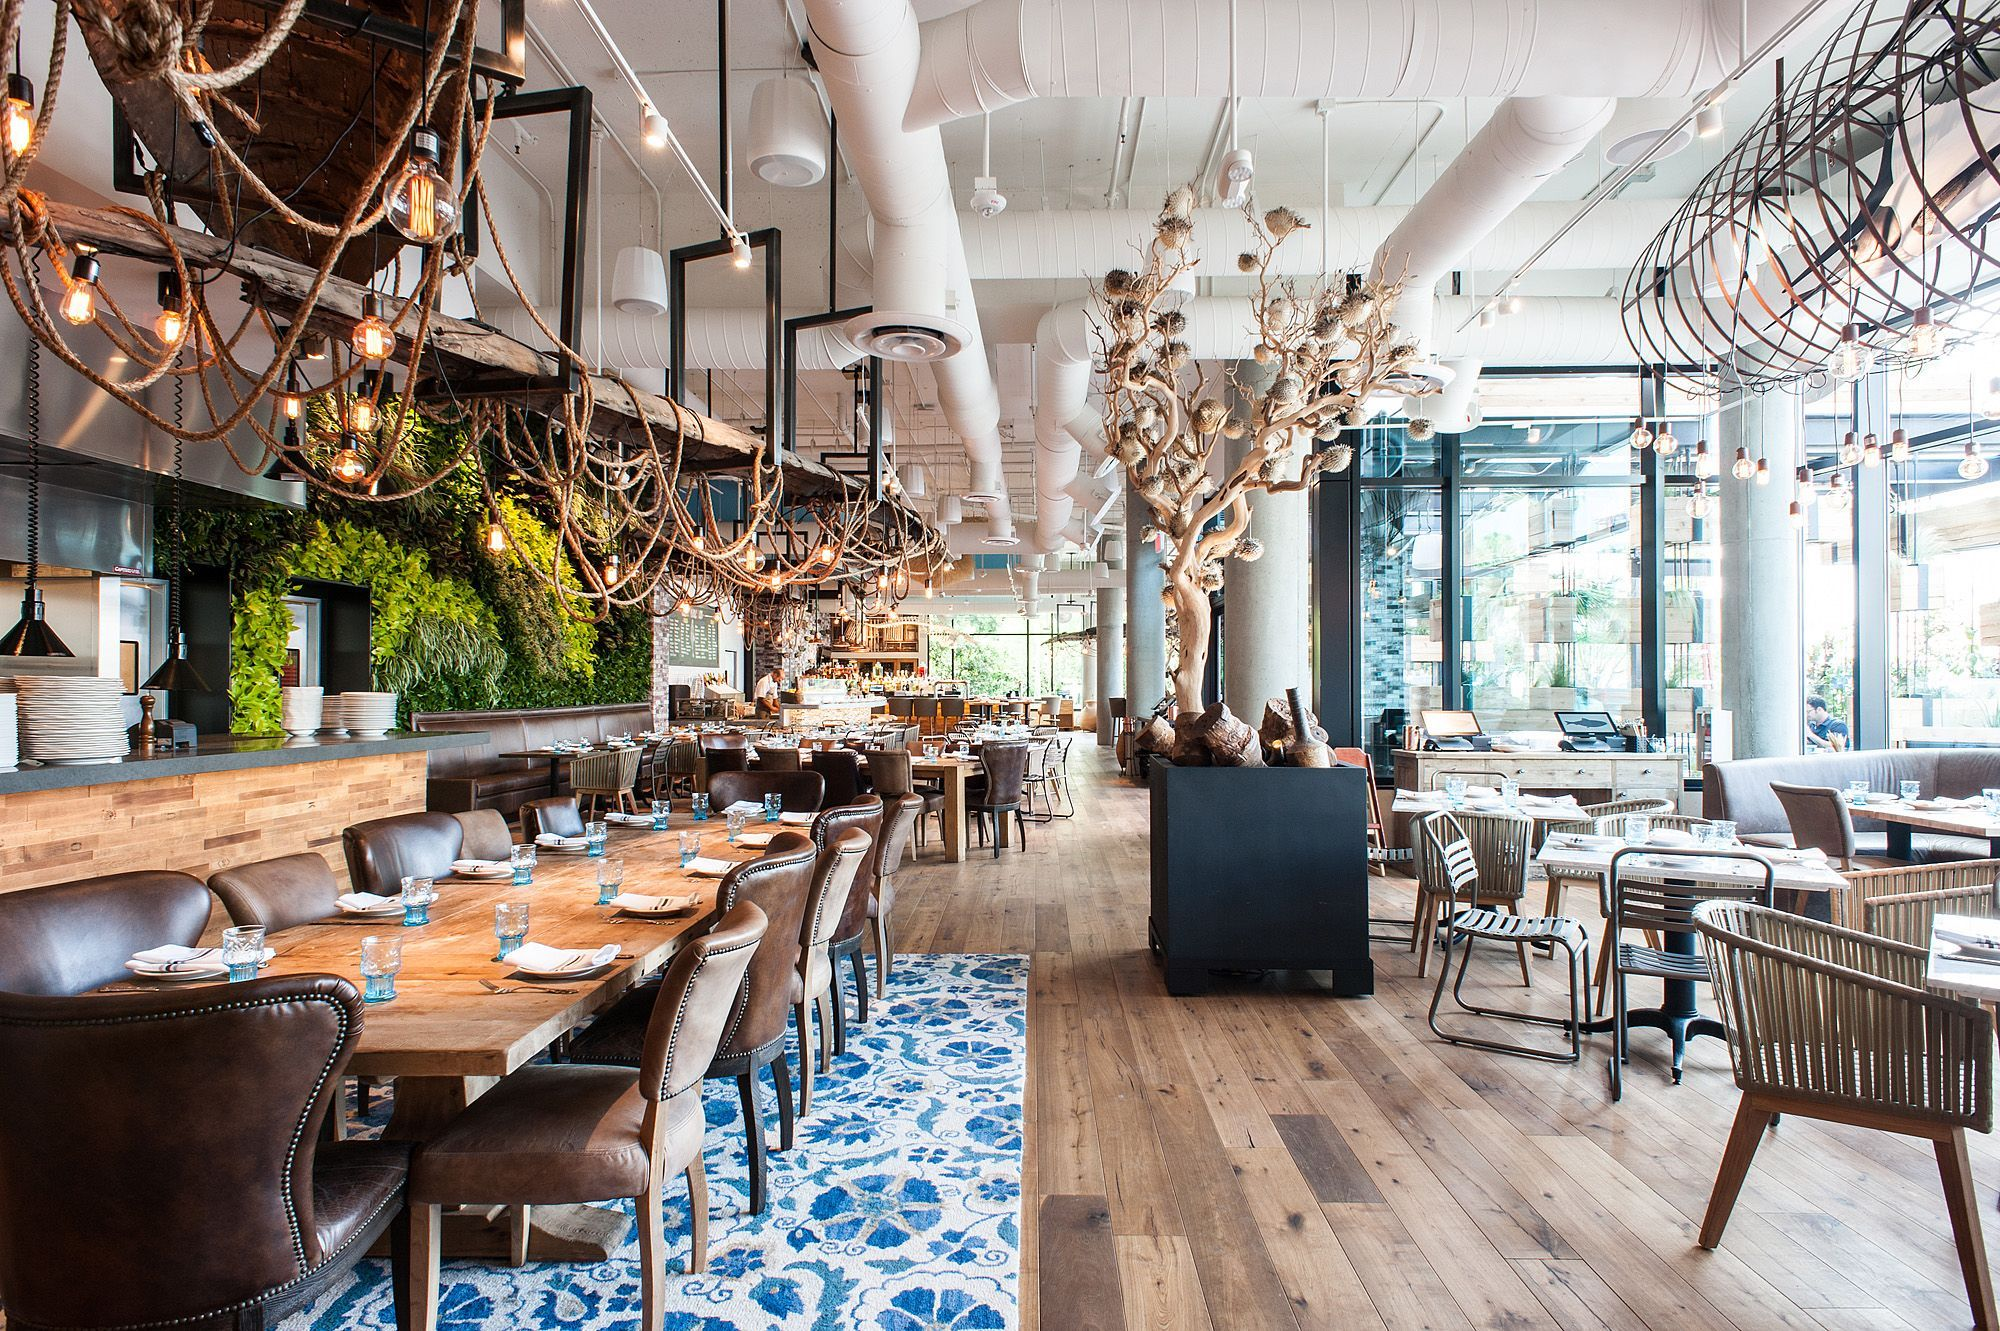 Los Angeles Restaurants With The Most Stunning Design Los Angeles Restaurants Seaside Restaurant Bar Design Restaurant